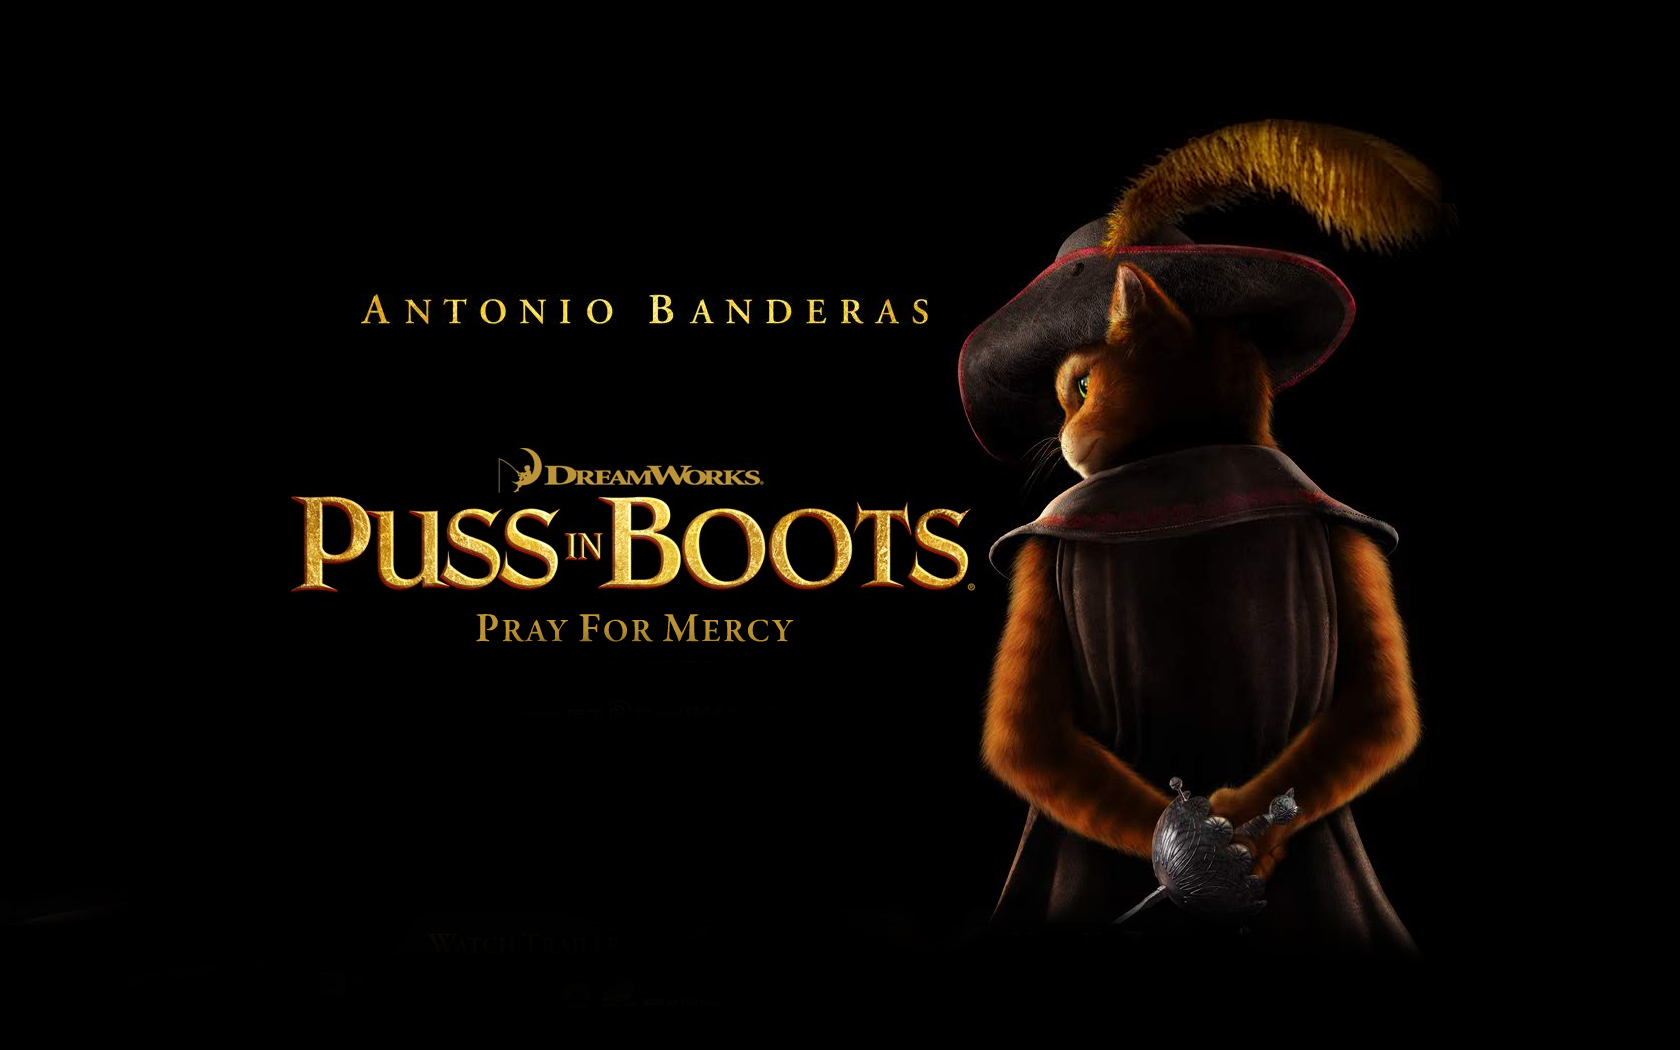 puss in boots 2 full movie download free